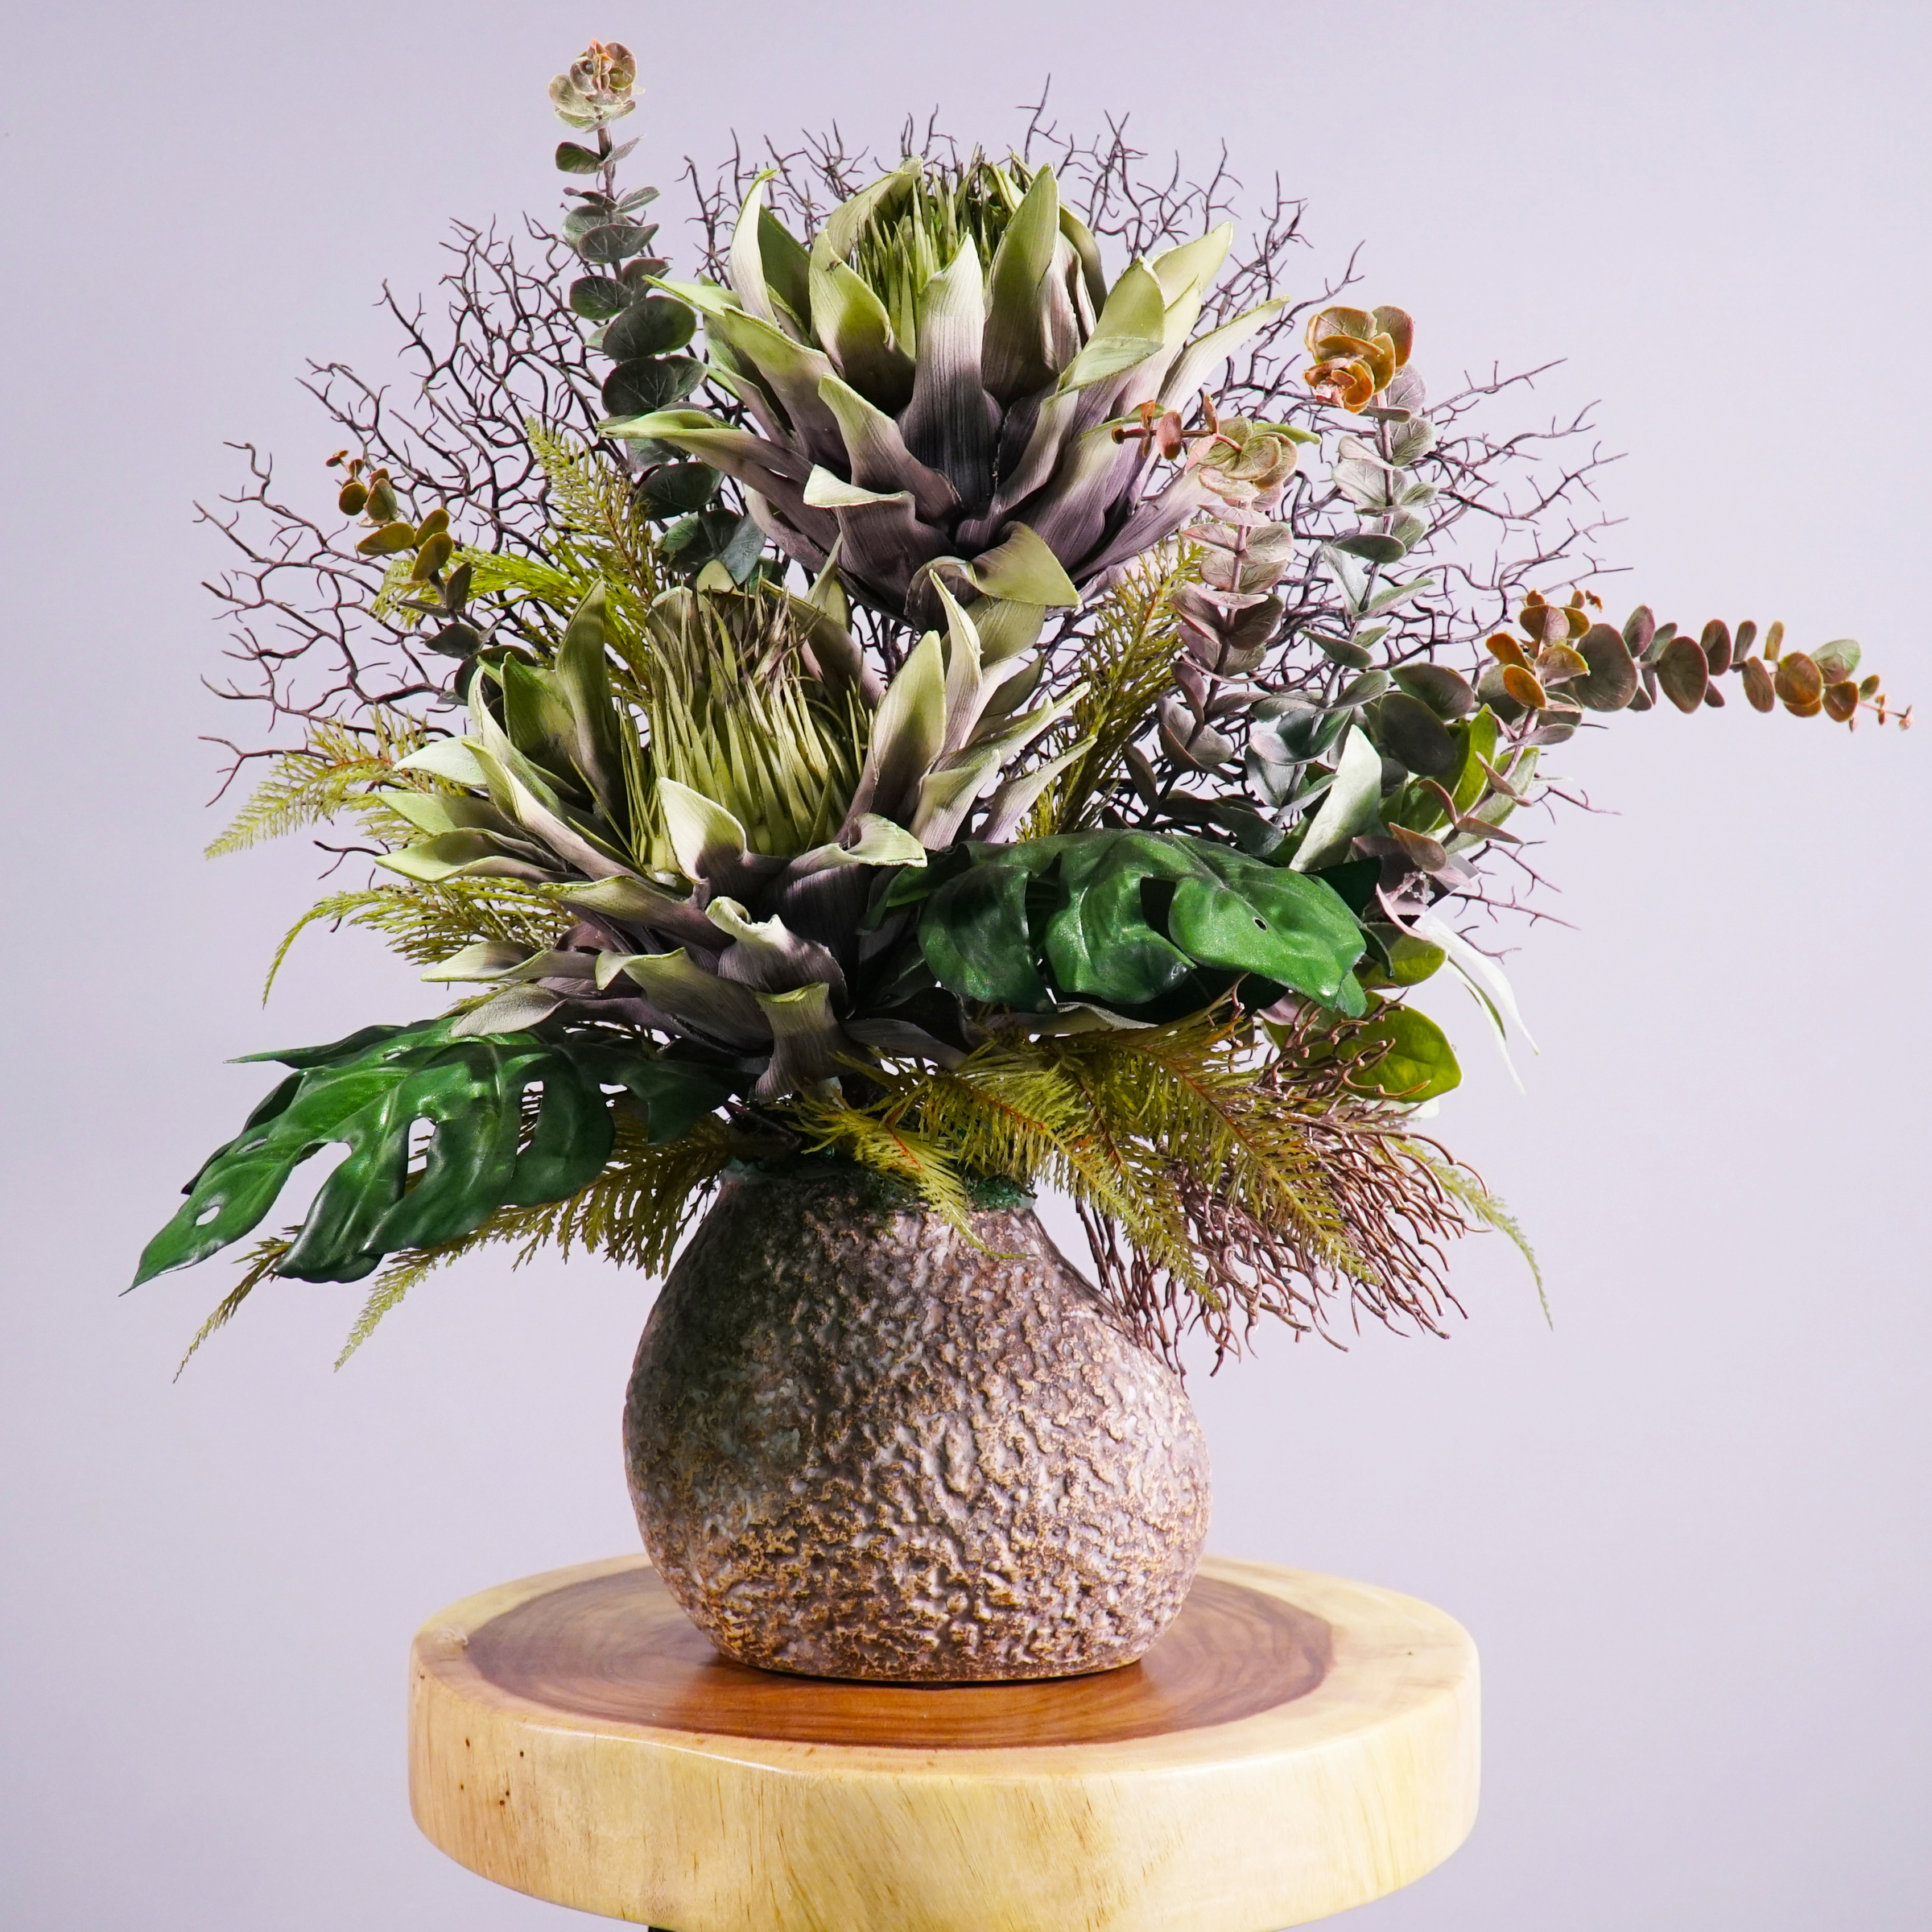 Artistic Lily Flower Decor in Stone Flower Pot.jpg